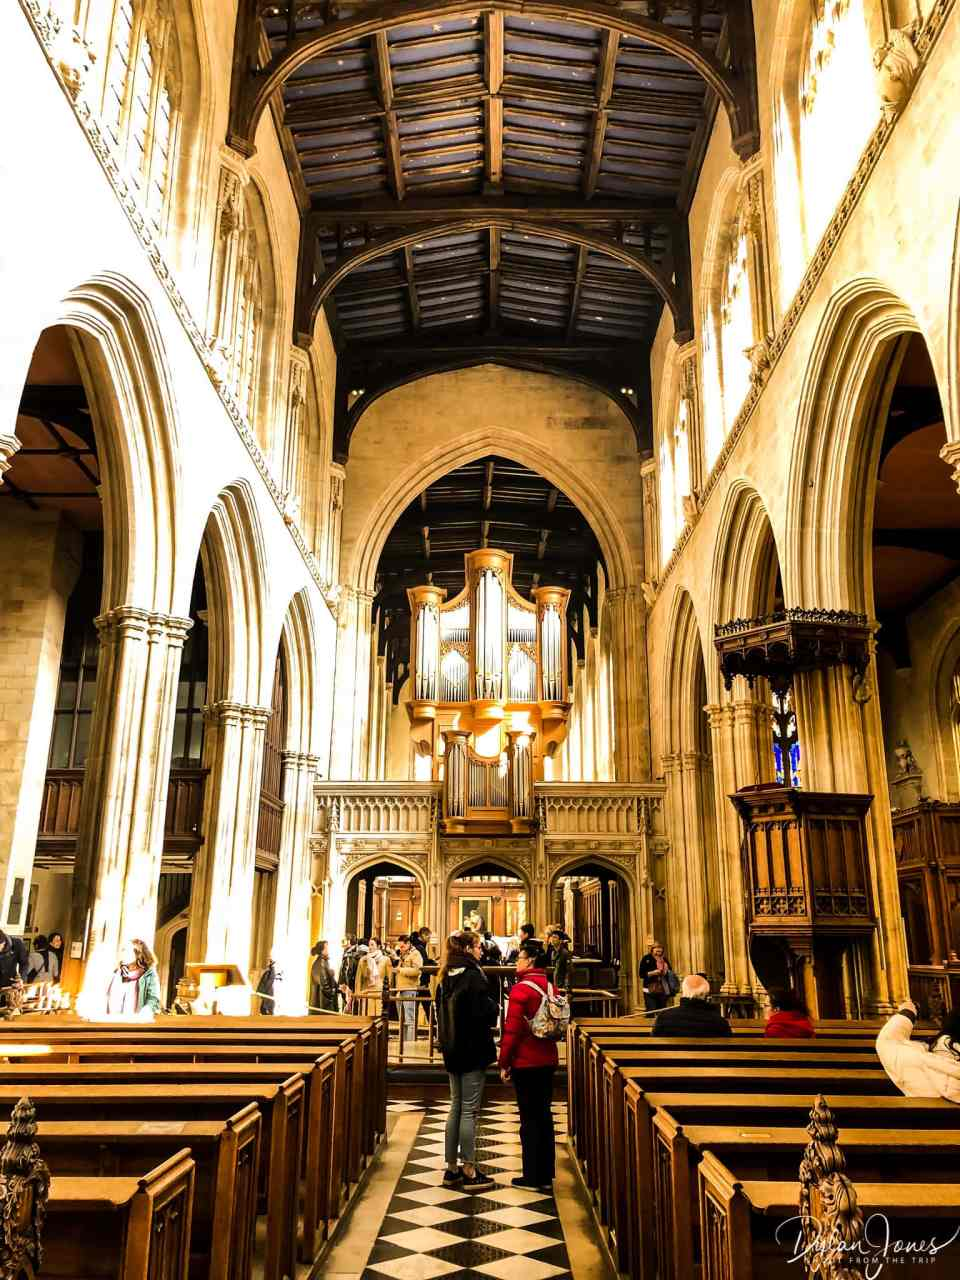 University Church of St. Mary the Virgin interior